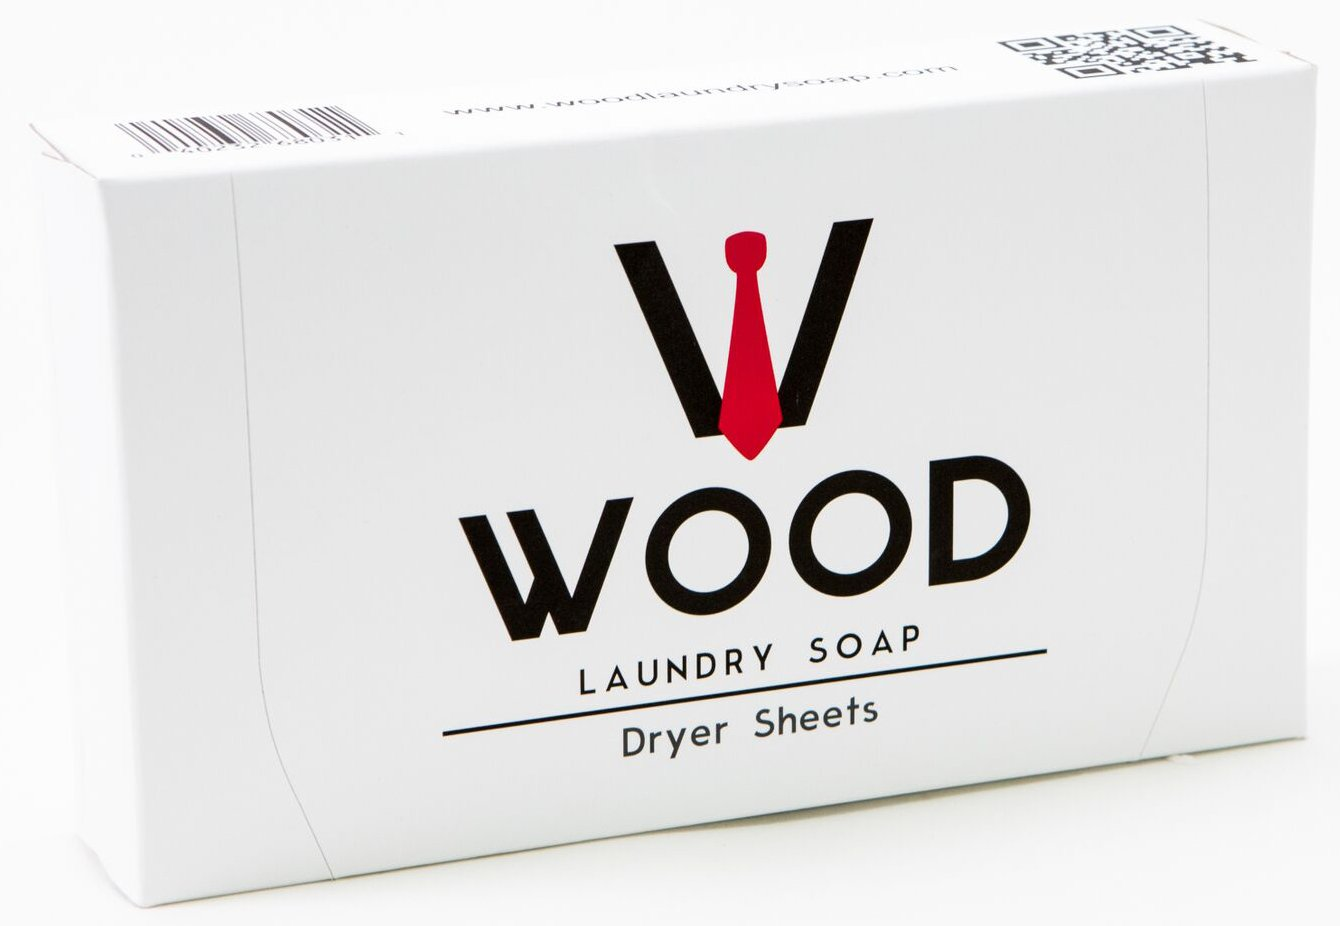 Men's Dryer Sheets by Wood Laundry Soap, 40 Count (12, 40 Count)